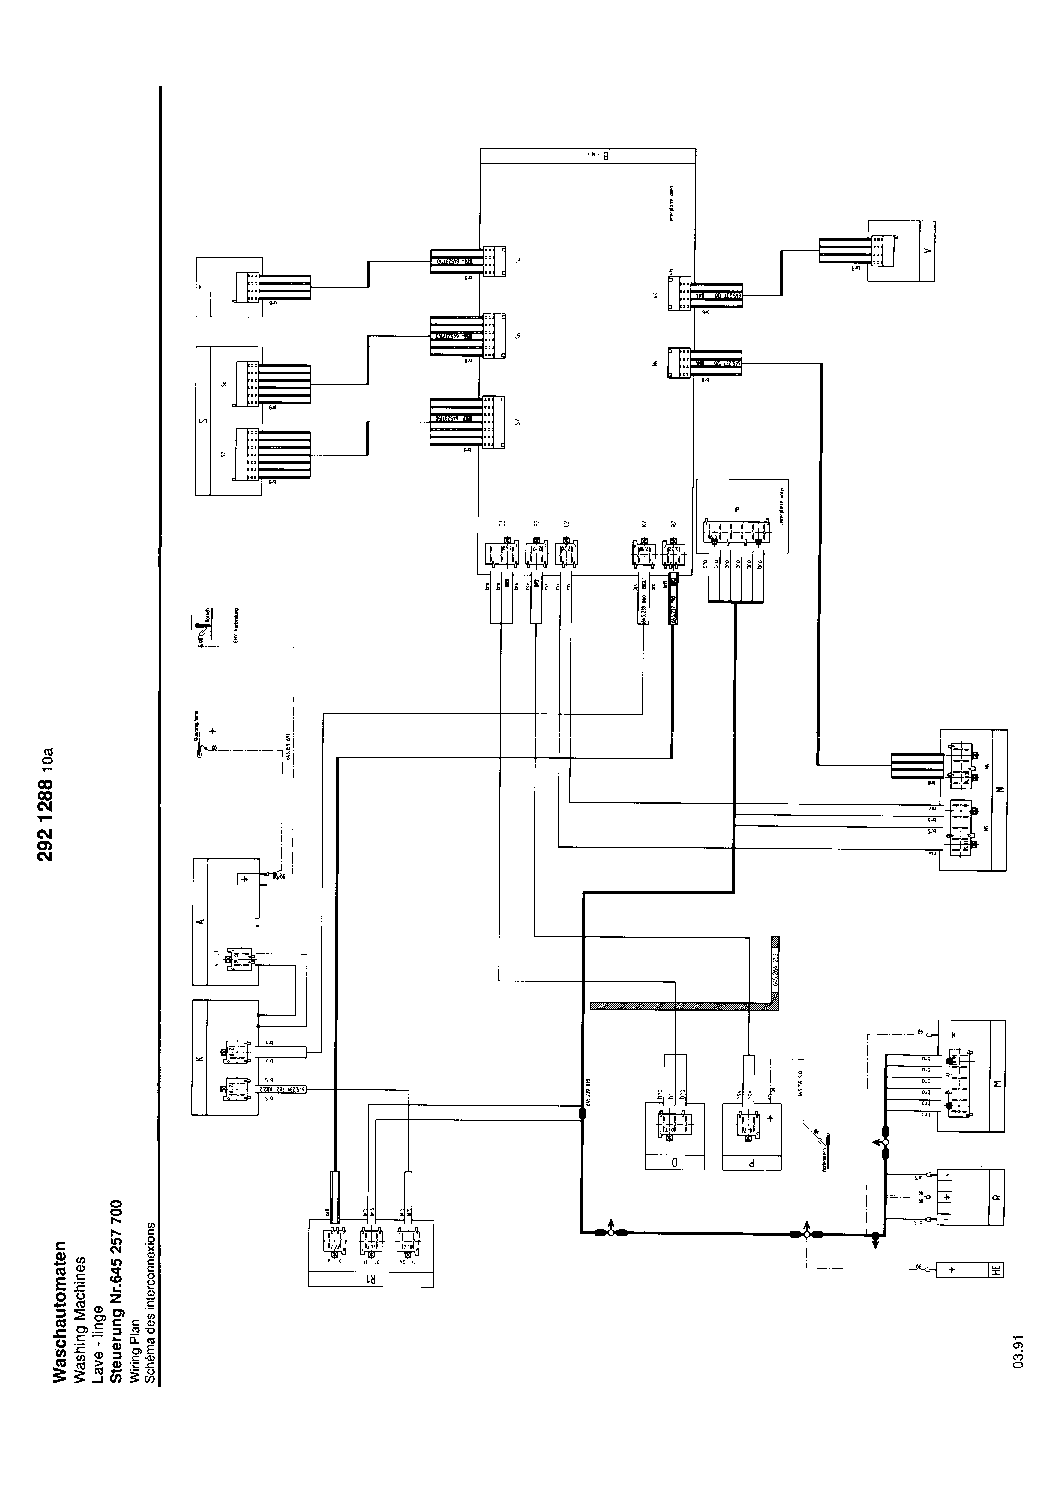 AEG LAVAMAT 610 Service Manual download, schematics, eeprom ... on